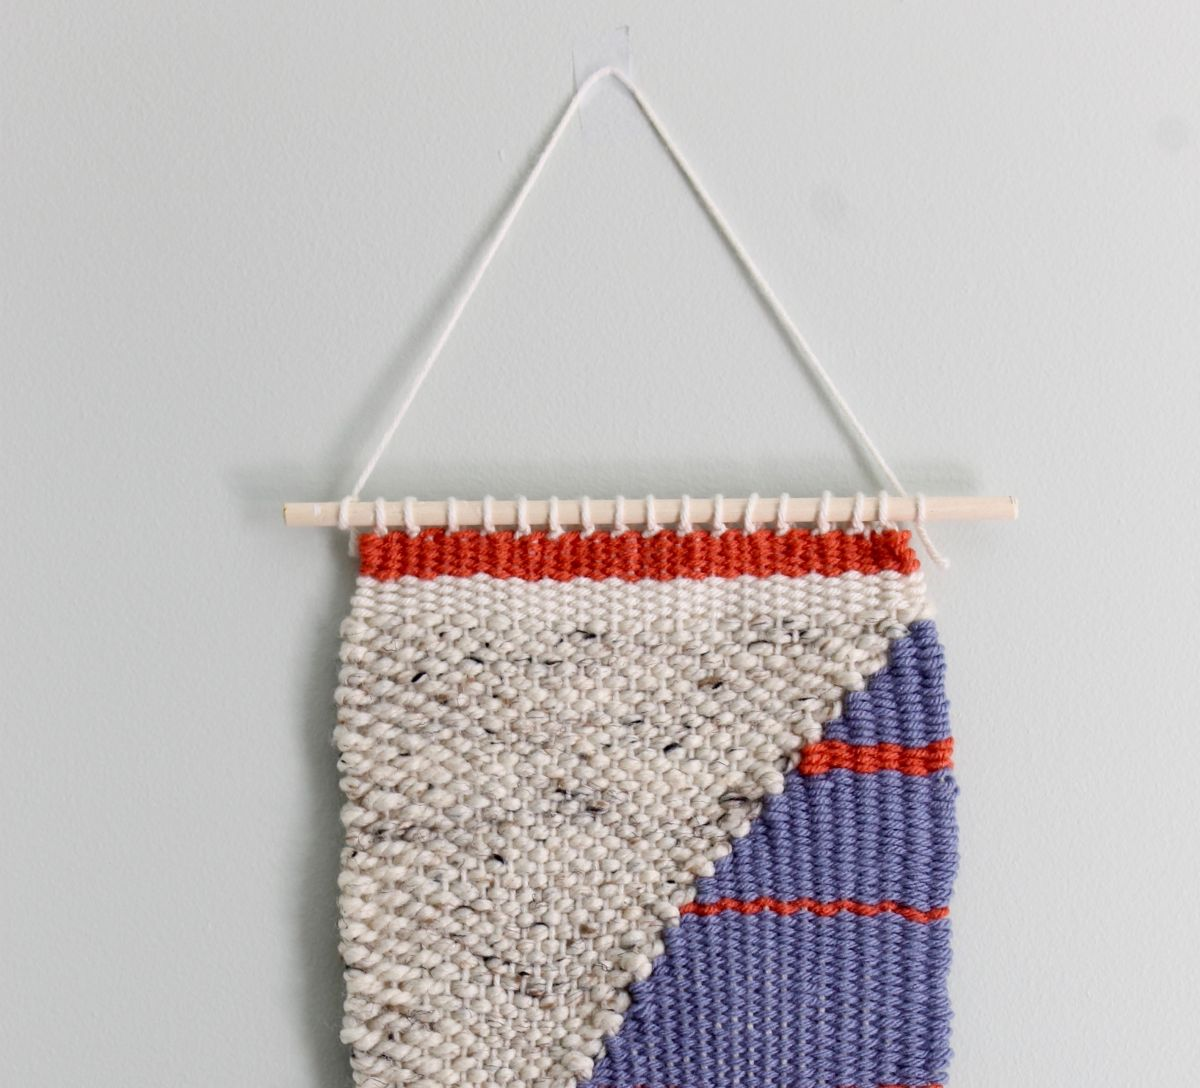 DIY Loom and Woven Wall Hanging - hang